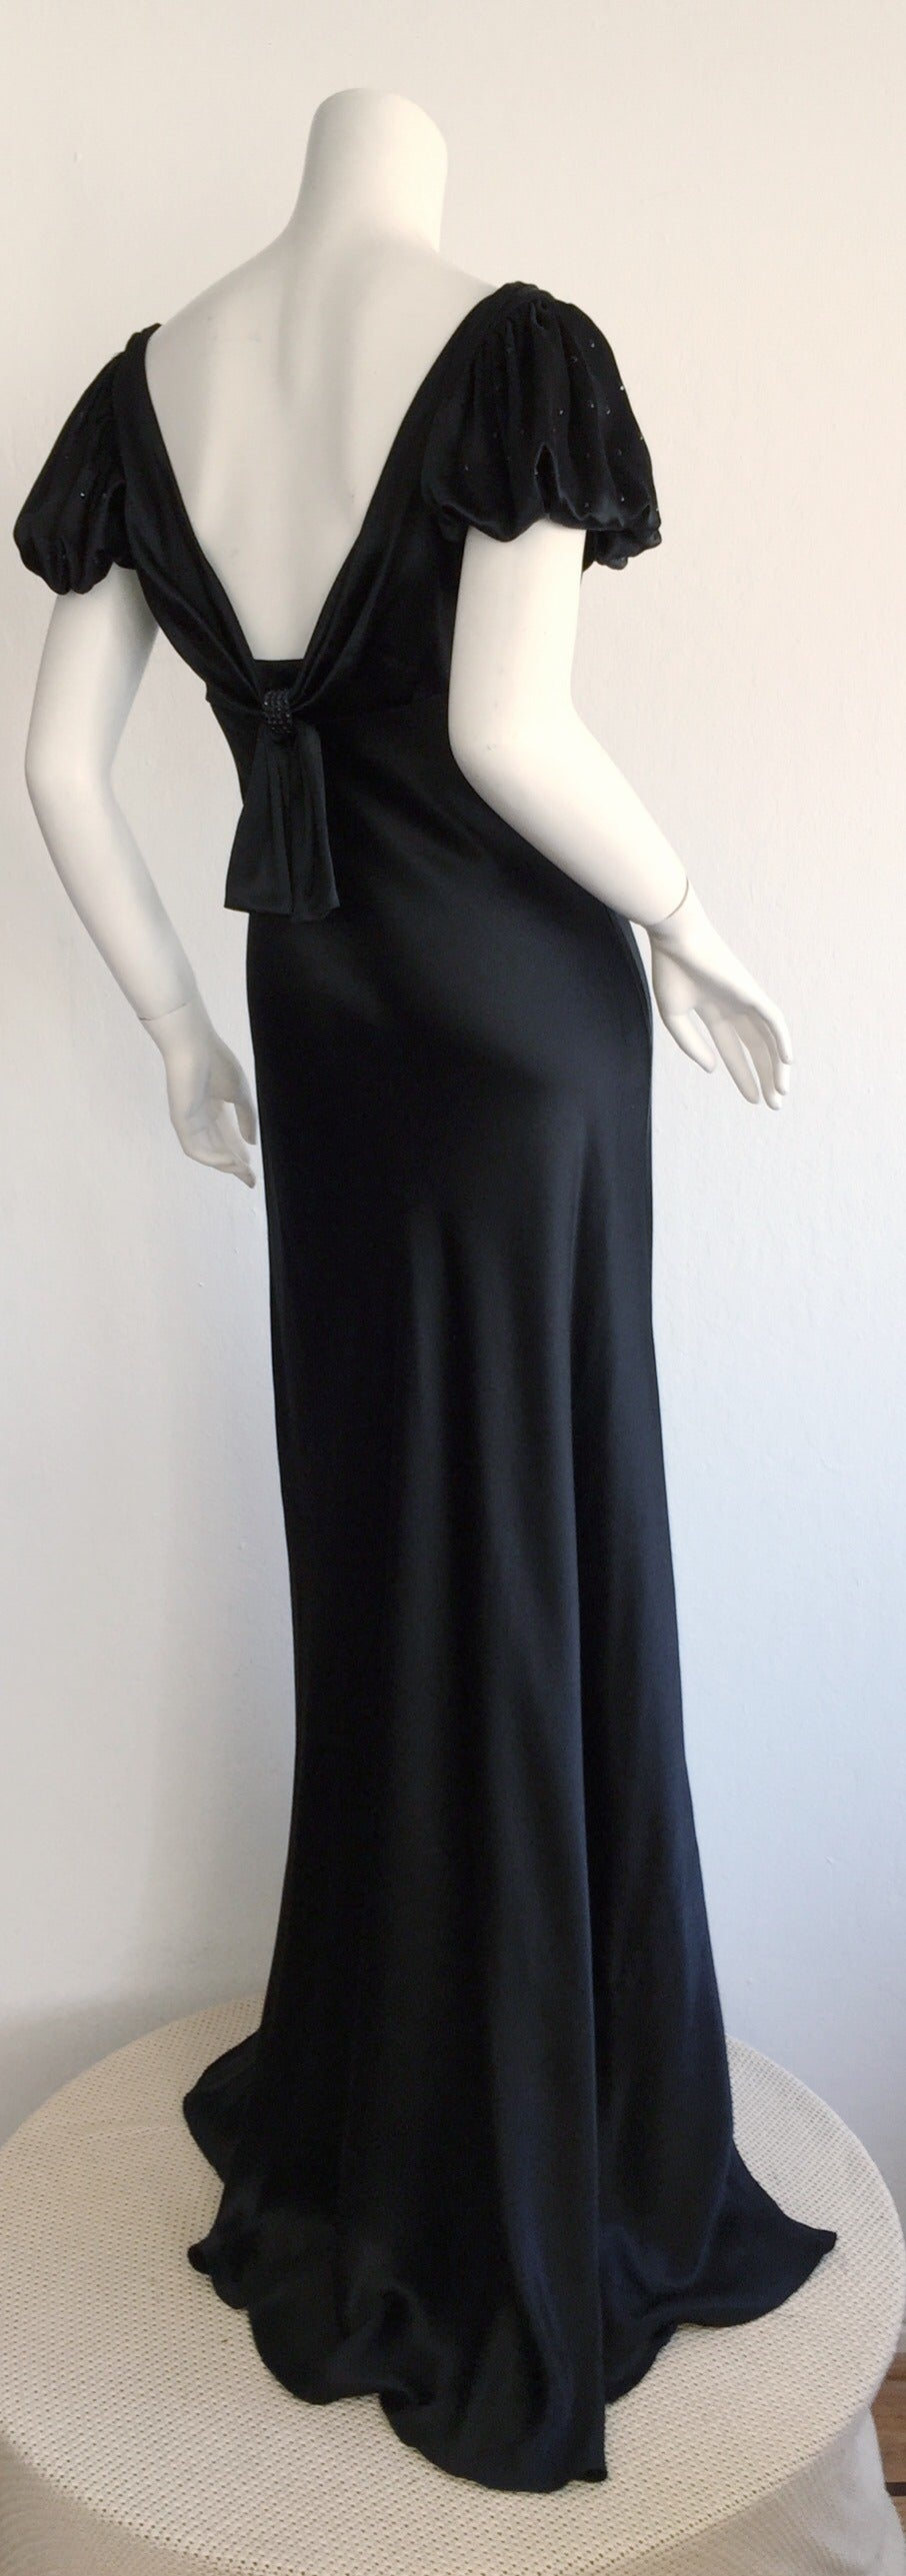 Stunning Jenny Packham 90s Vintage Black Silk Romantic ' Fluid ' Gown w/ Jewels In Excellent Condition For Sale In San Francisco, CA